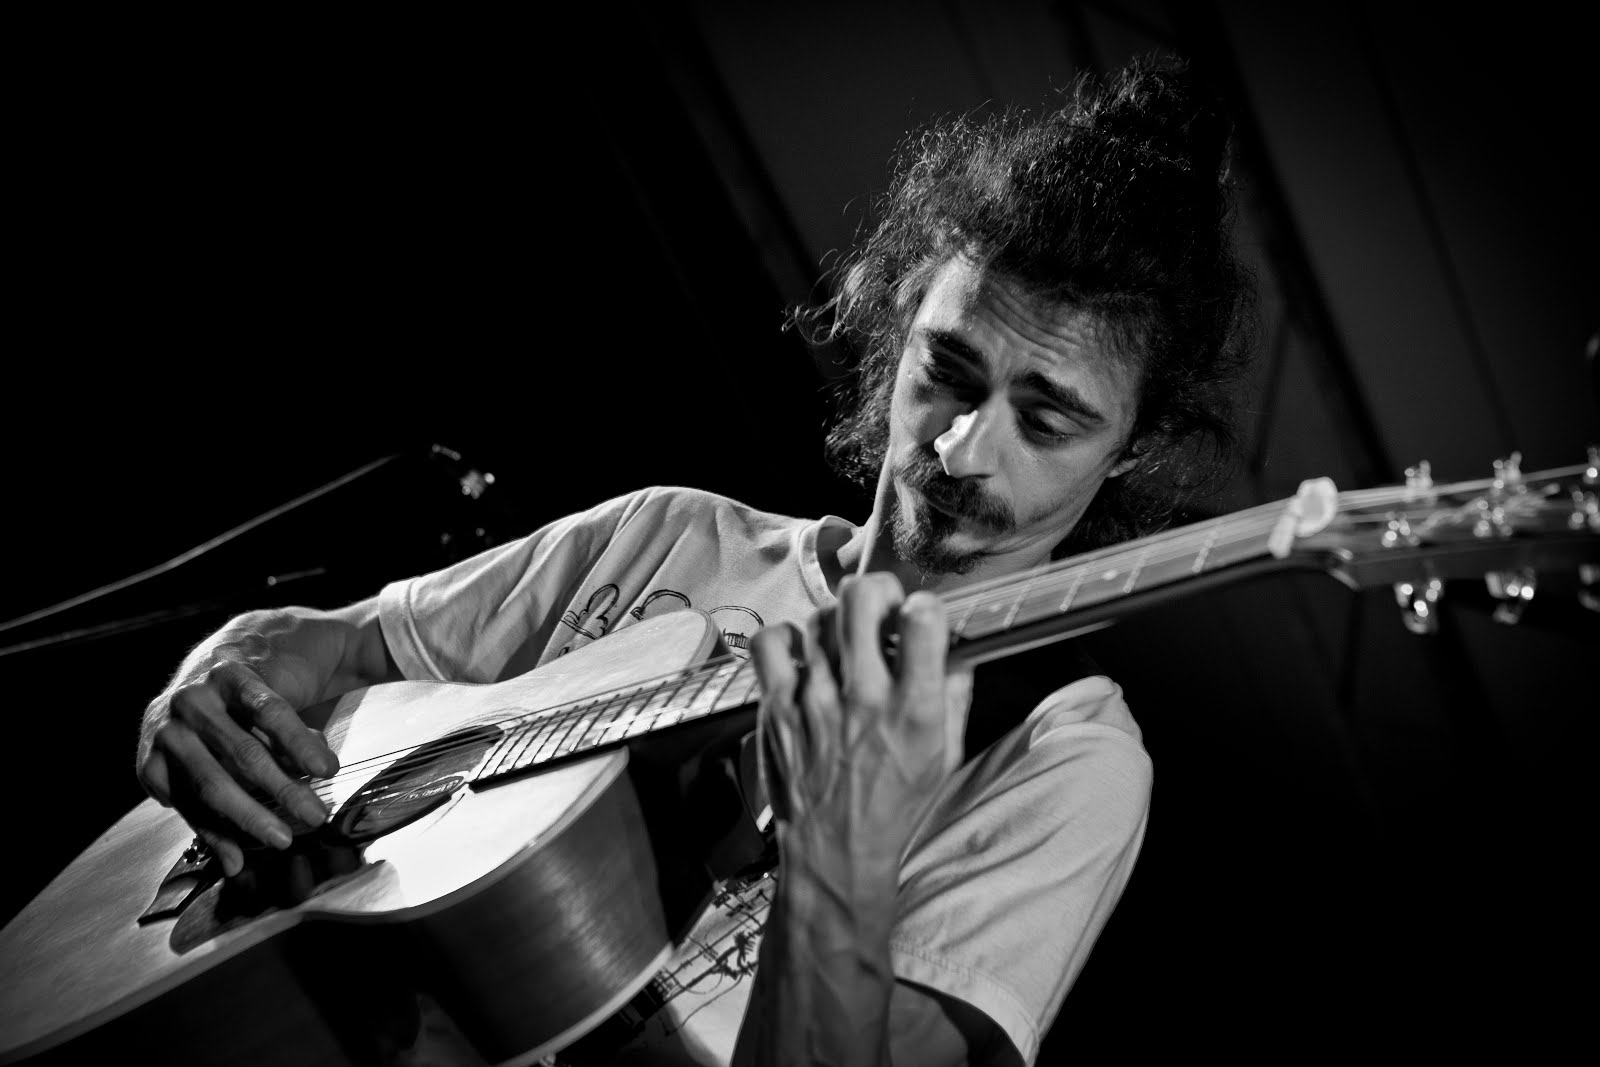 Lorenzo Niccolini Fingerstyle Guitar in concerto - Video & Photogallery